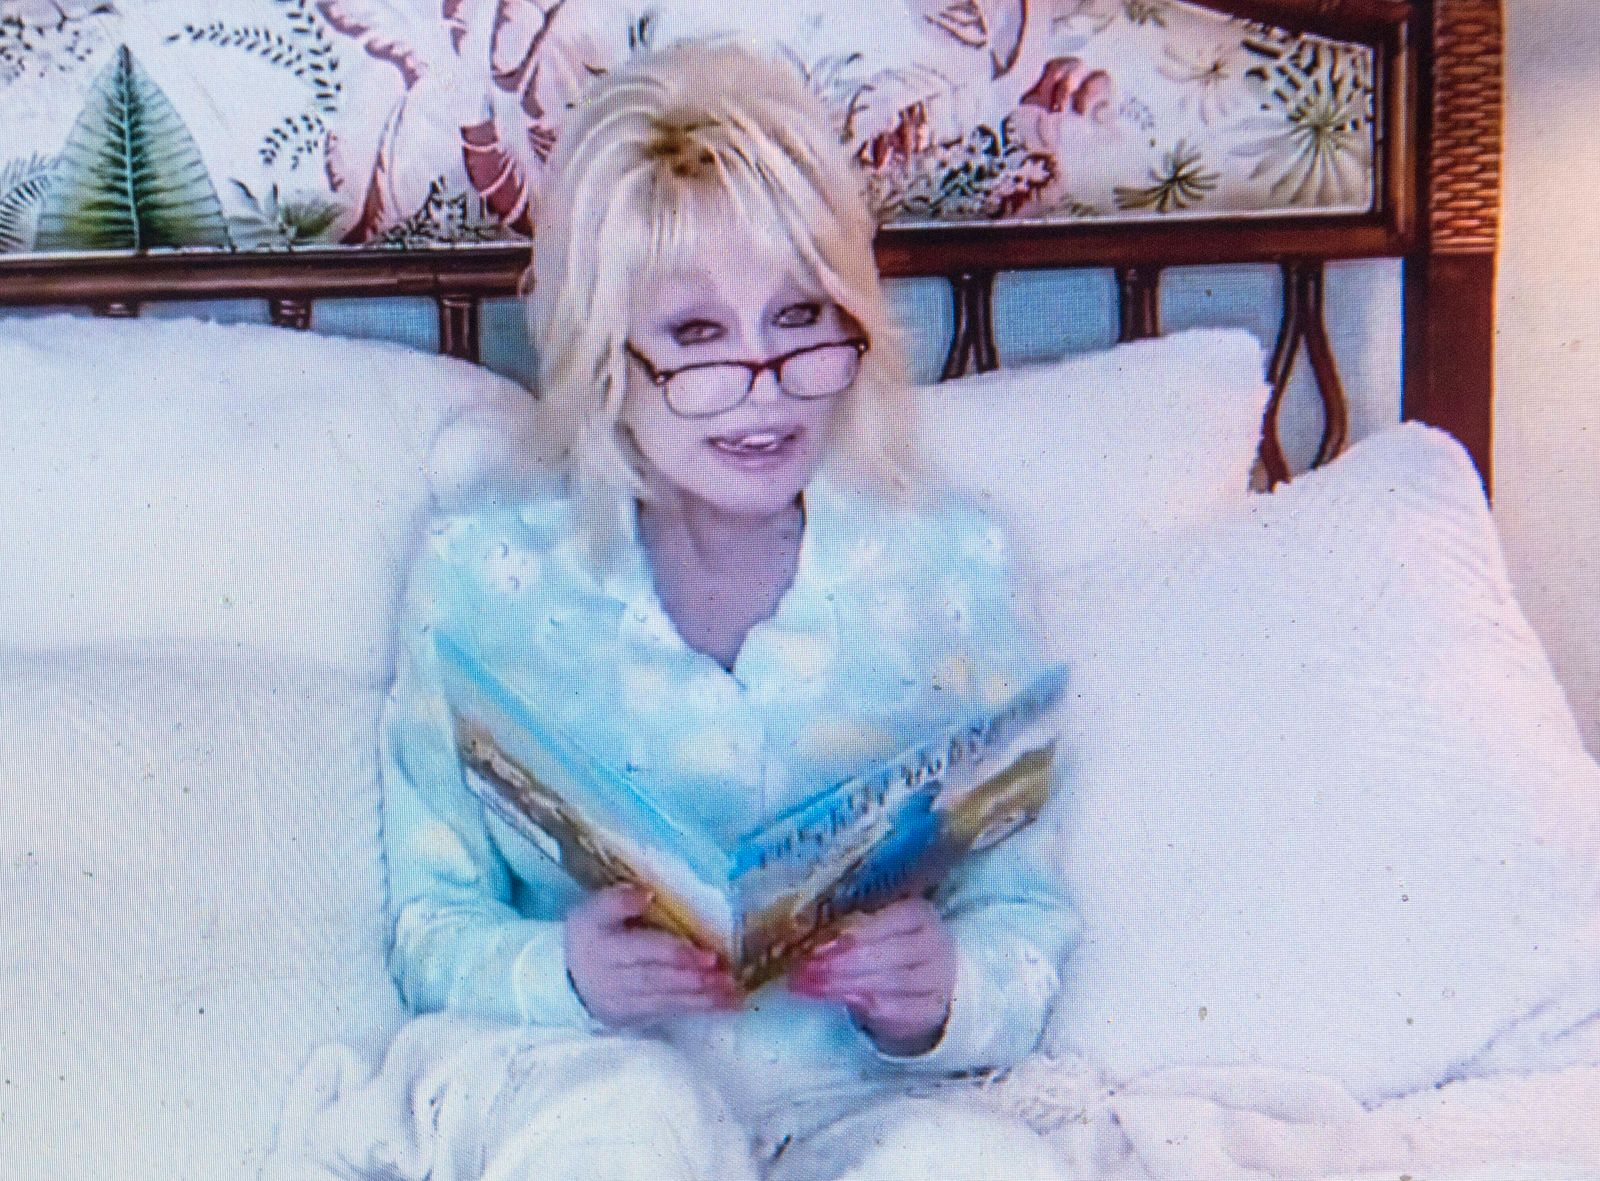 April 2, 2020: DOLLY PARTON, 74, helps get your kids to sleep with Goodnight with Dolly tonite reading The Little Engine